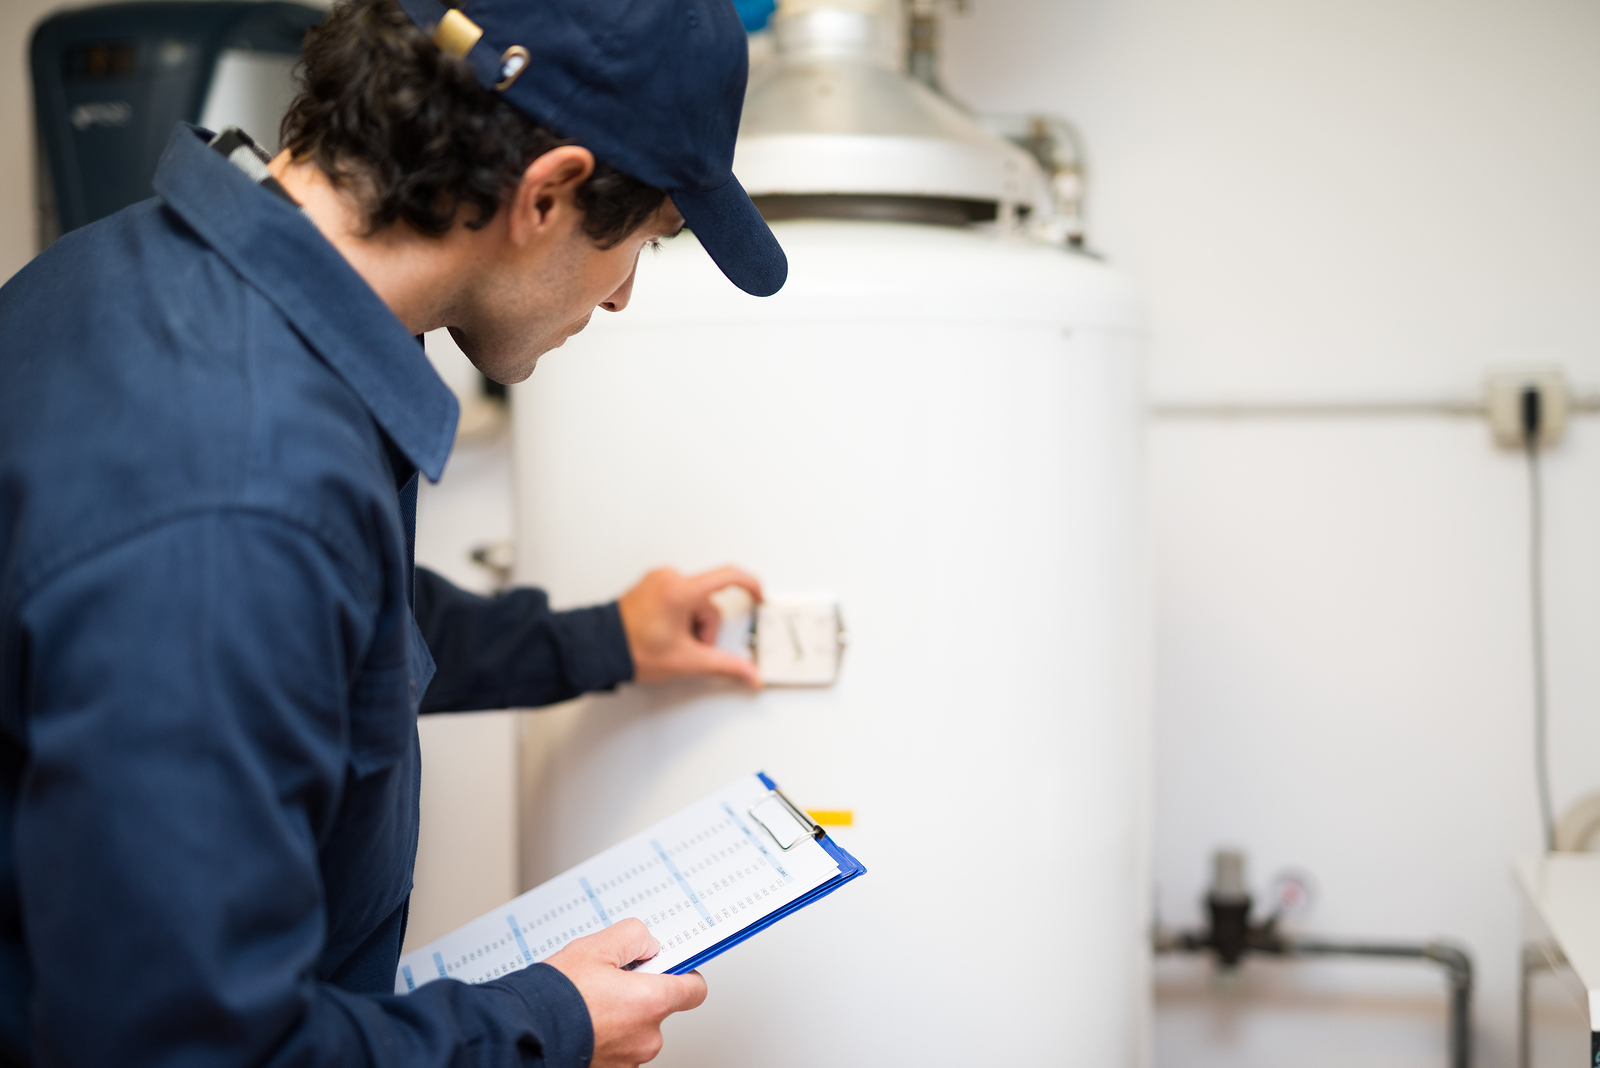 Commercial Plumbing Services in Western New York